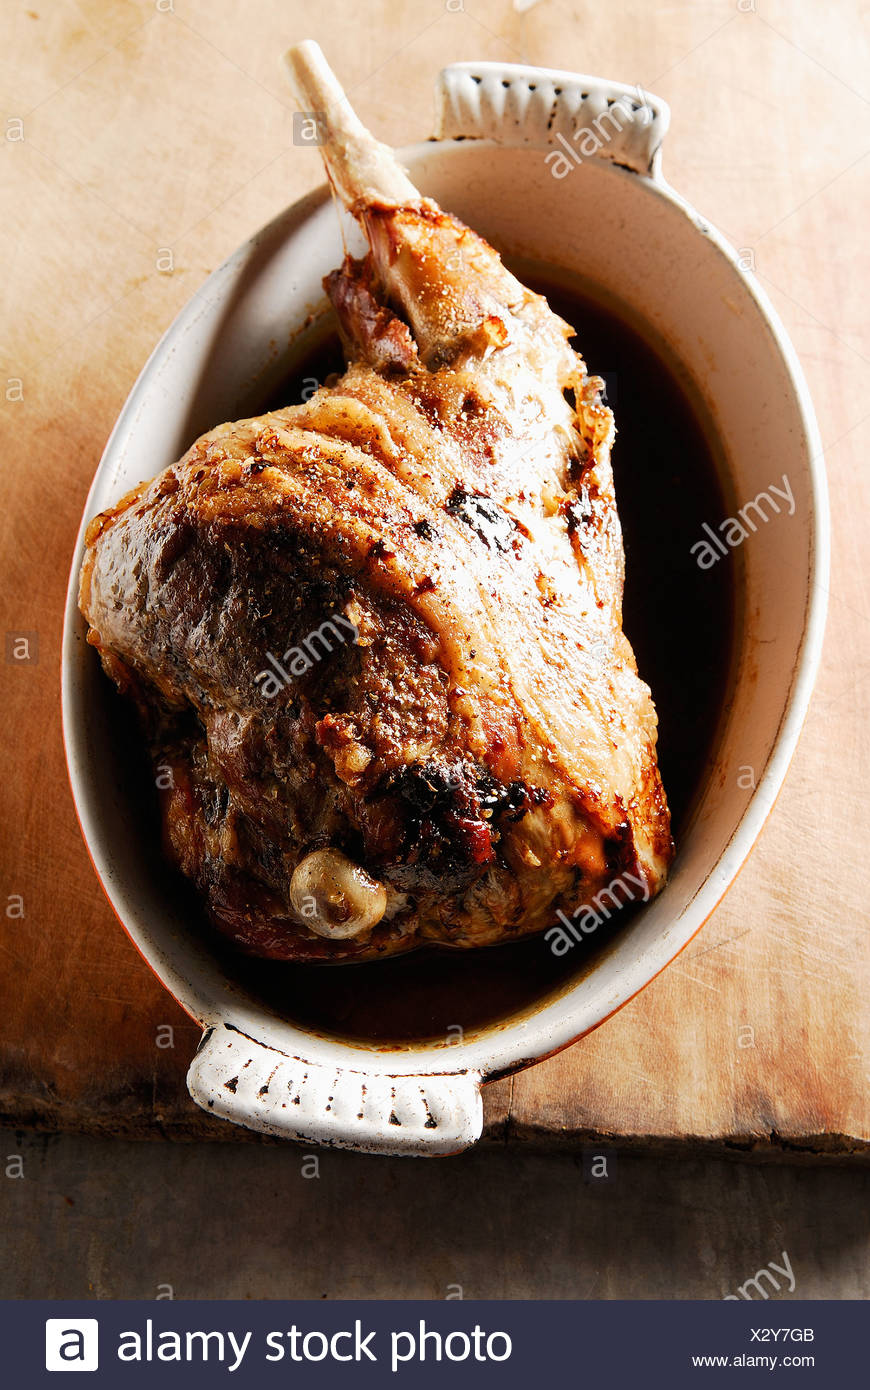 Leg of lamb cooked seven hours in the oven,served with a spoon - Stock Image